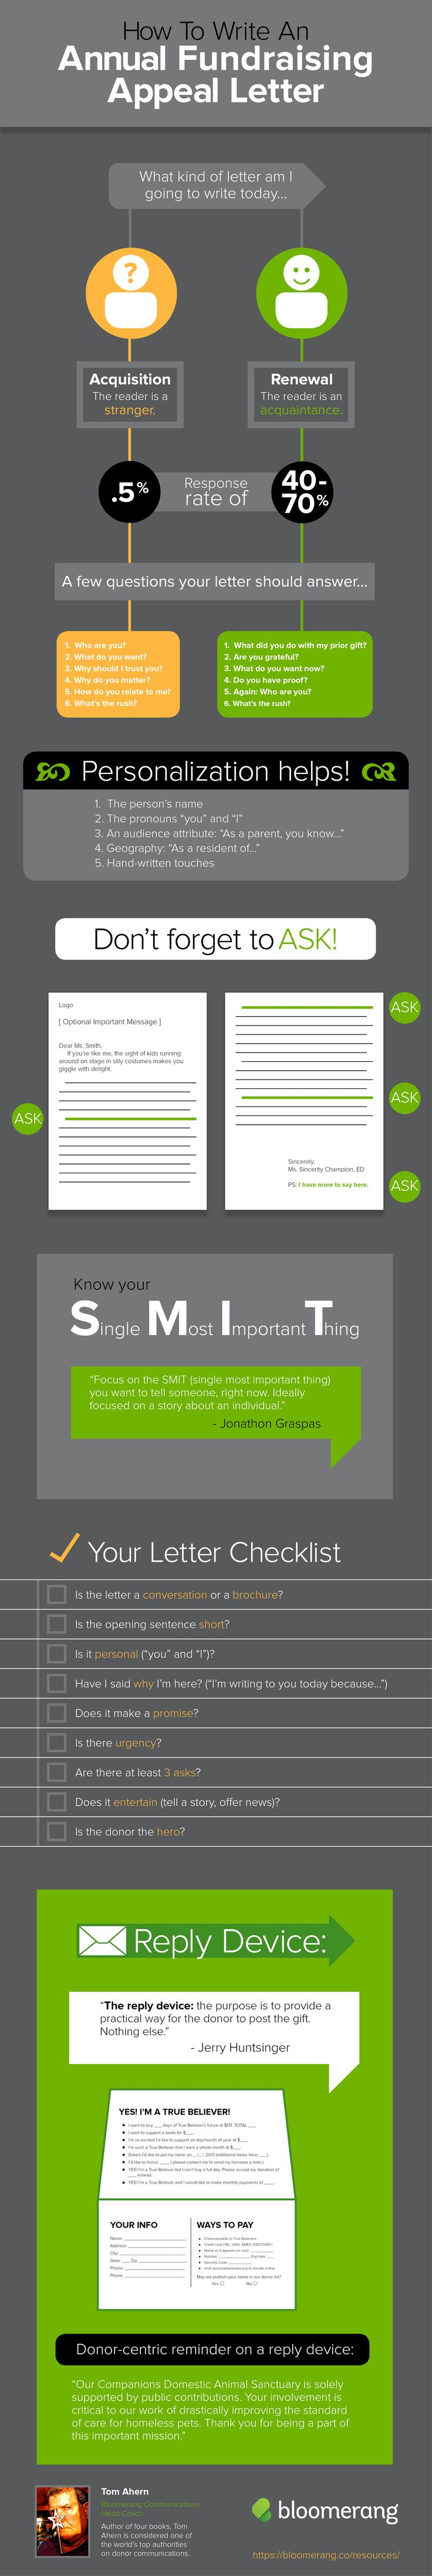 [INFOGRAPHIC] How To Write An Annual Fundraising Appeal Letter